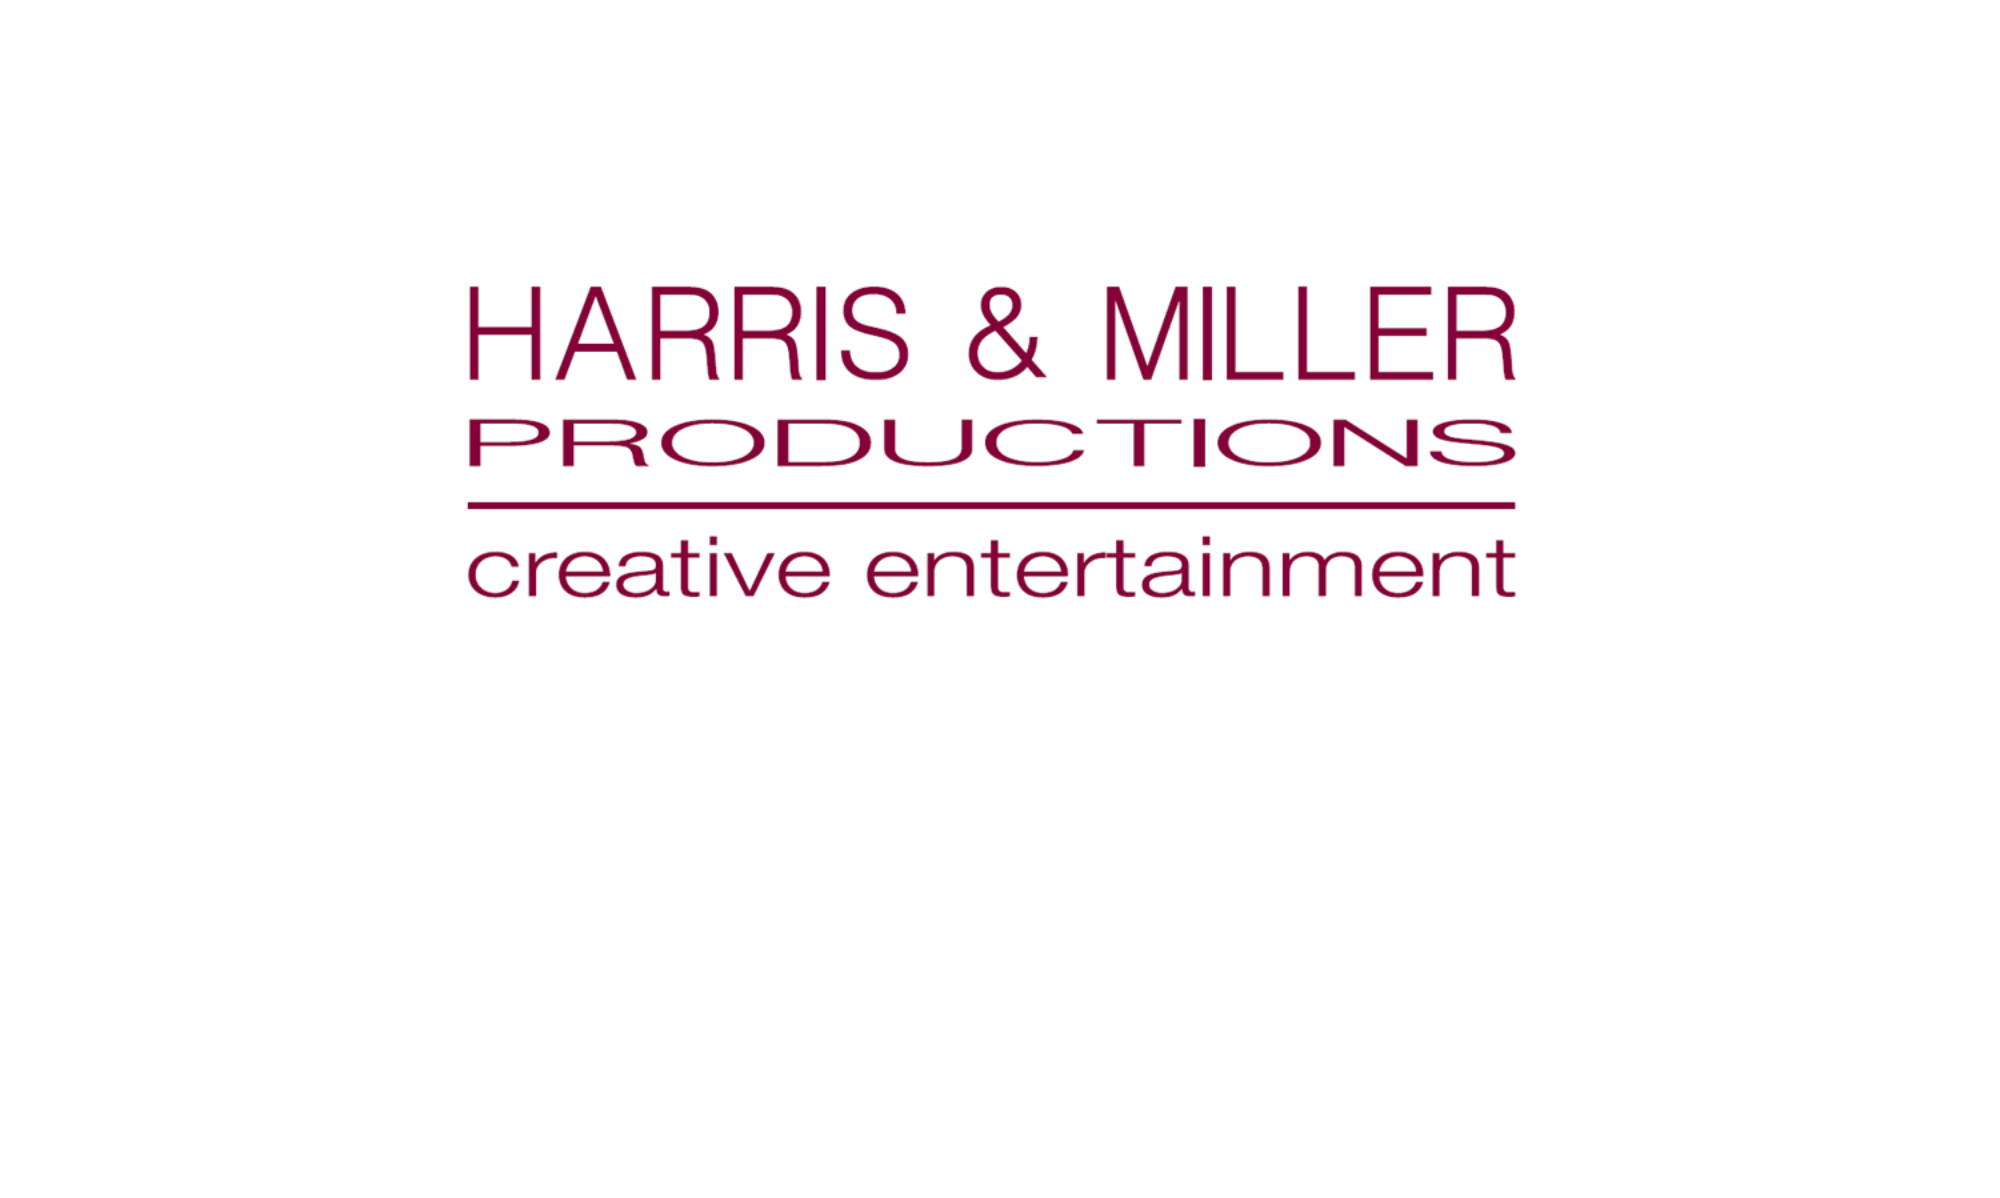 HARRIS AND MILLER PRODUCTIONS